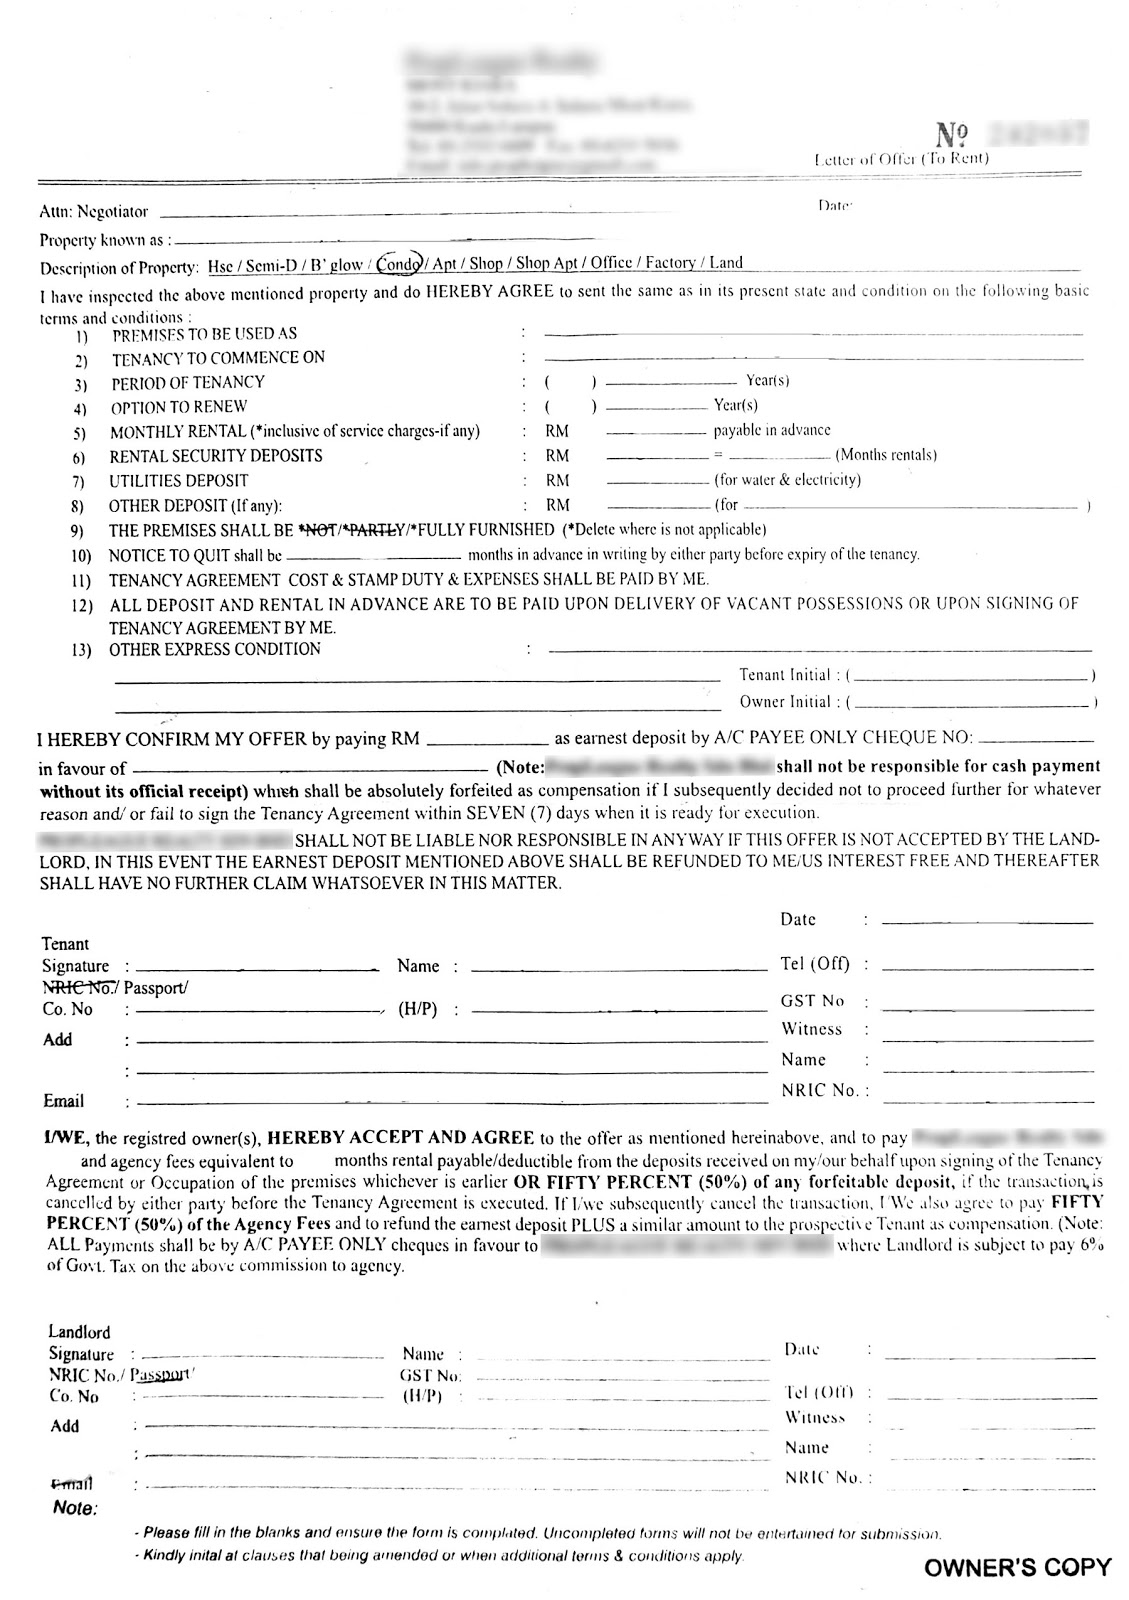 Furniture rental agreement template, running a business involves establishing professional relationships with several parties including suppliers, clients and equipment leasing companies, building owners, employees and much more. How To Write Your Own Tenancy Agreement In Malaysia Recommend My